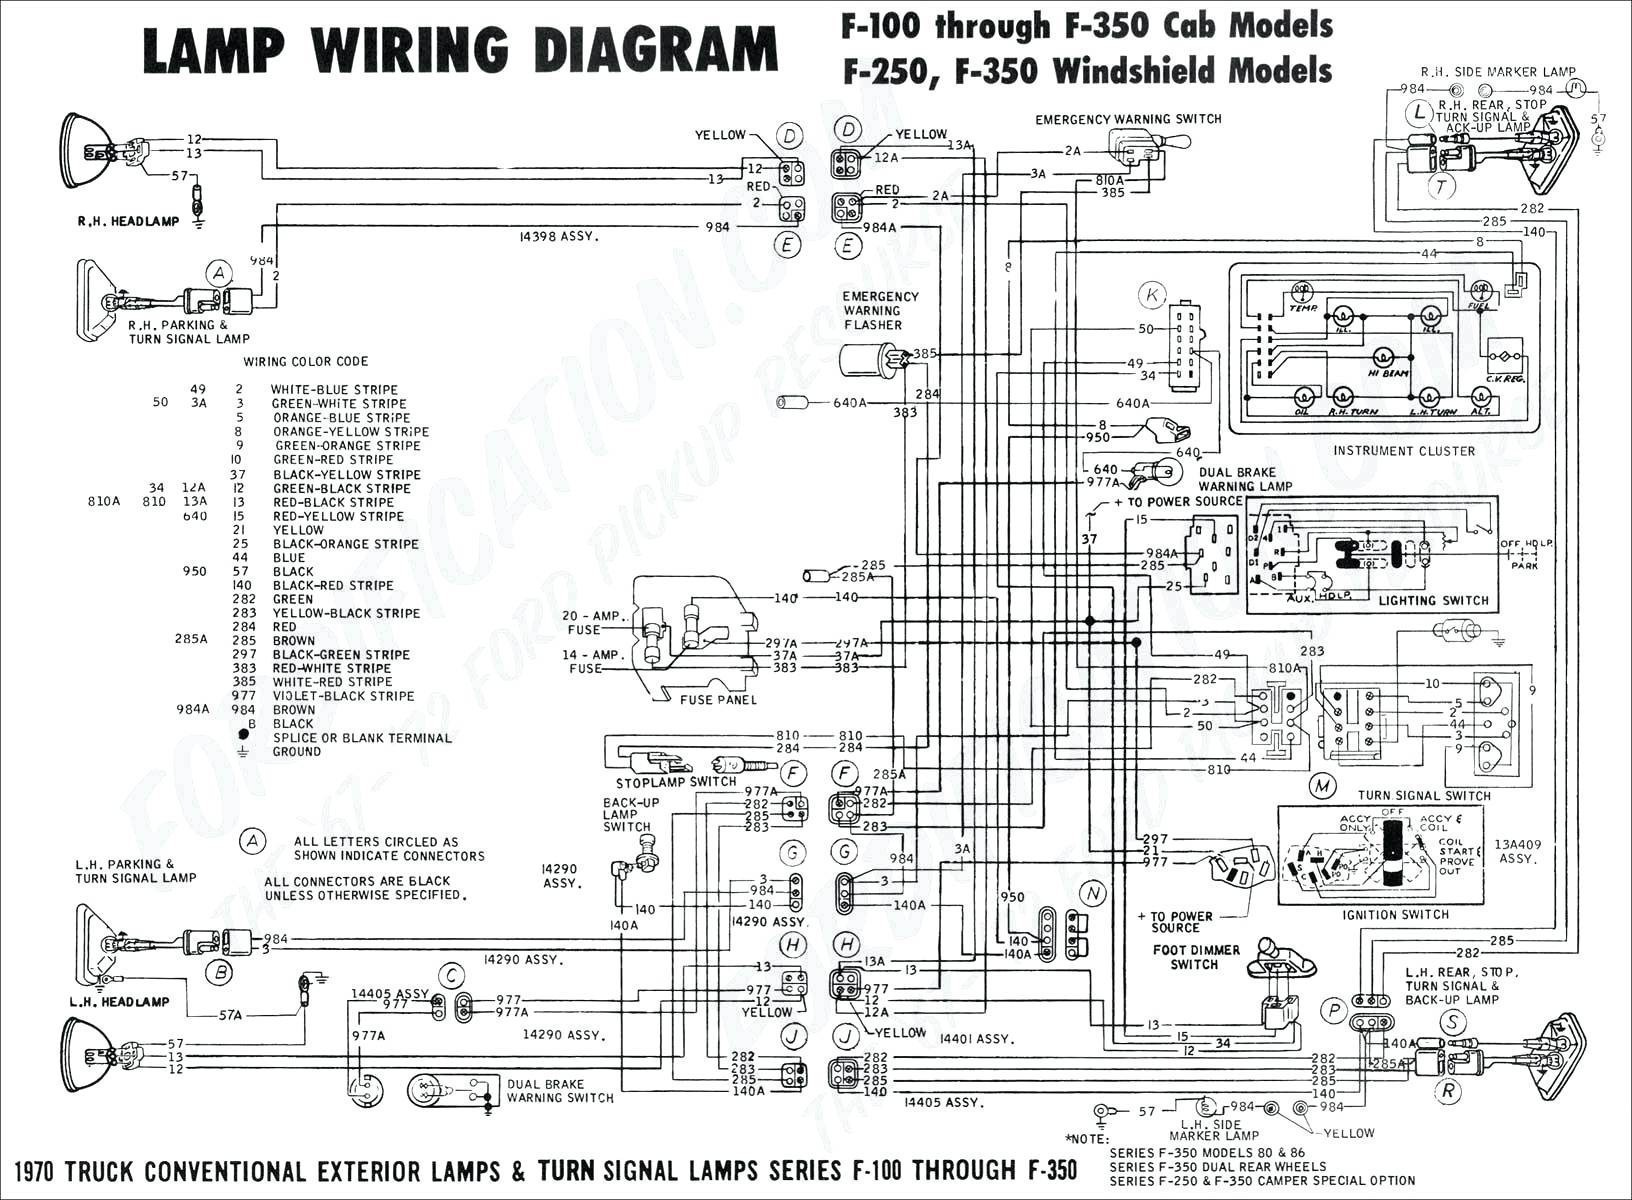 ez wiring 12 circuit to truck lite 900 diagram - wiring diagram insure  pour-quantity - pour-quantity.viagradonne.it  pour-quantity.viagradonne.it